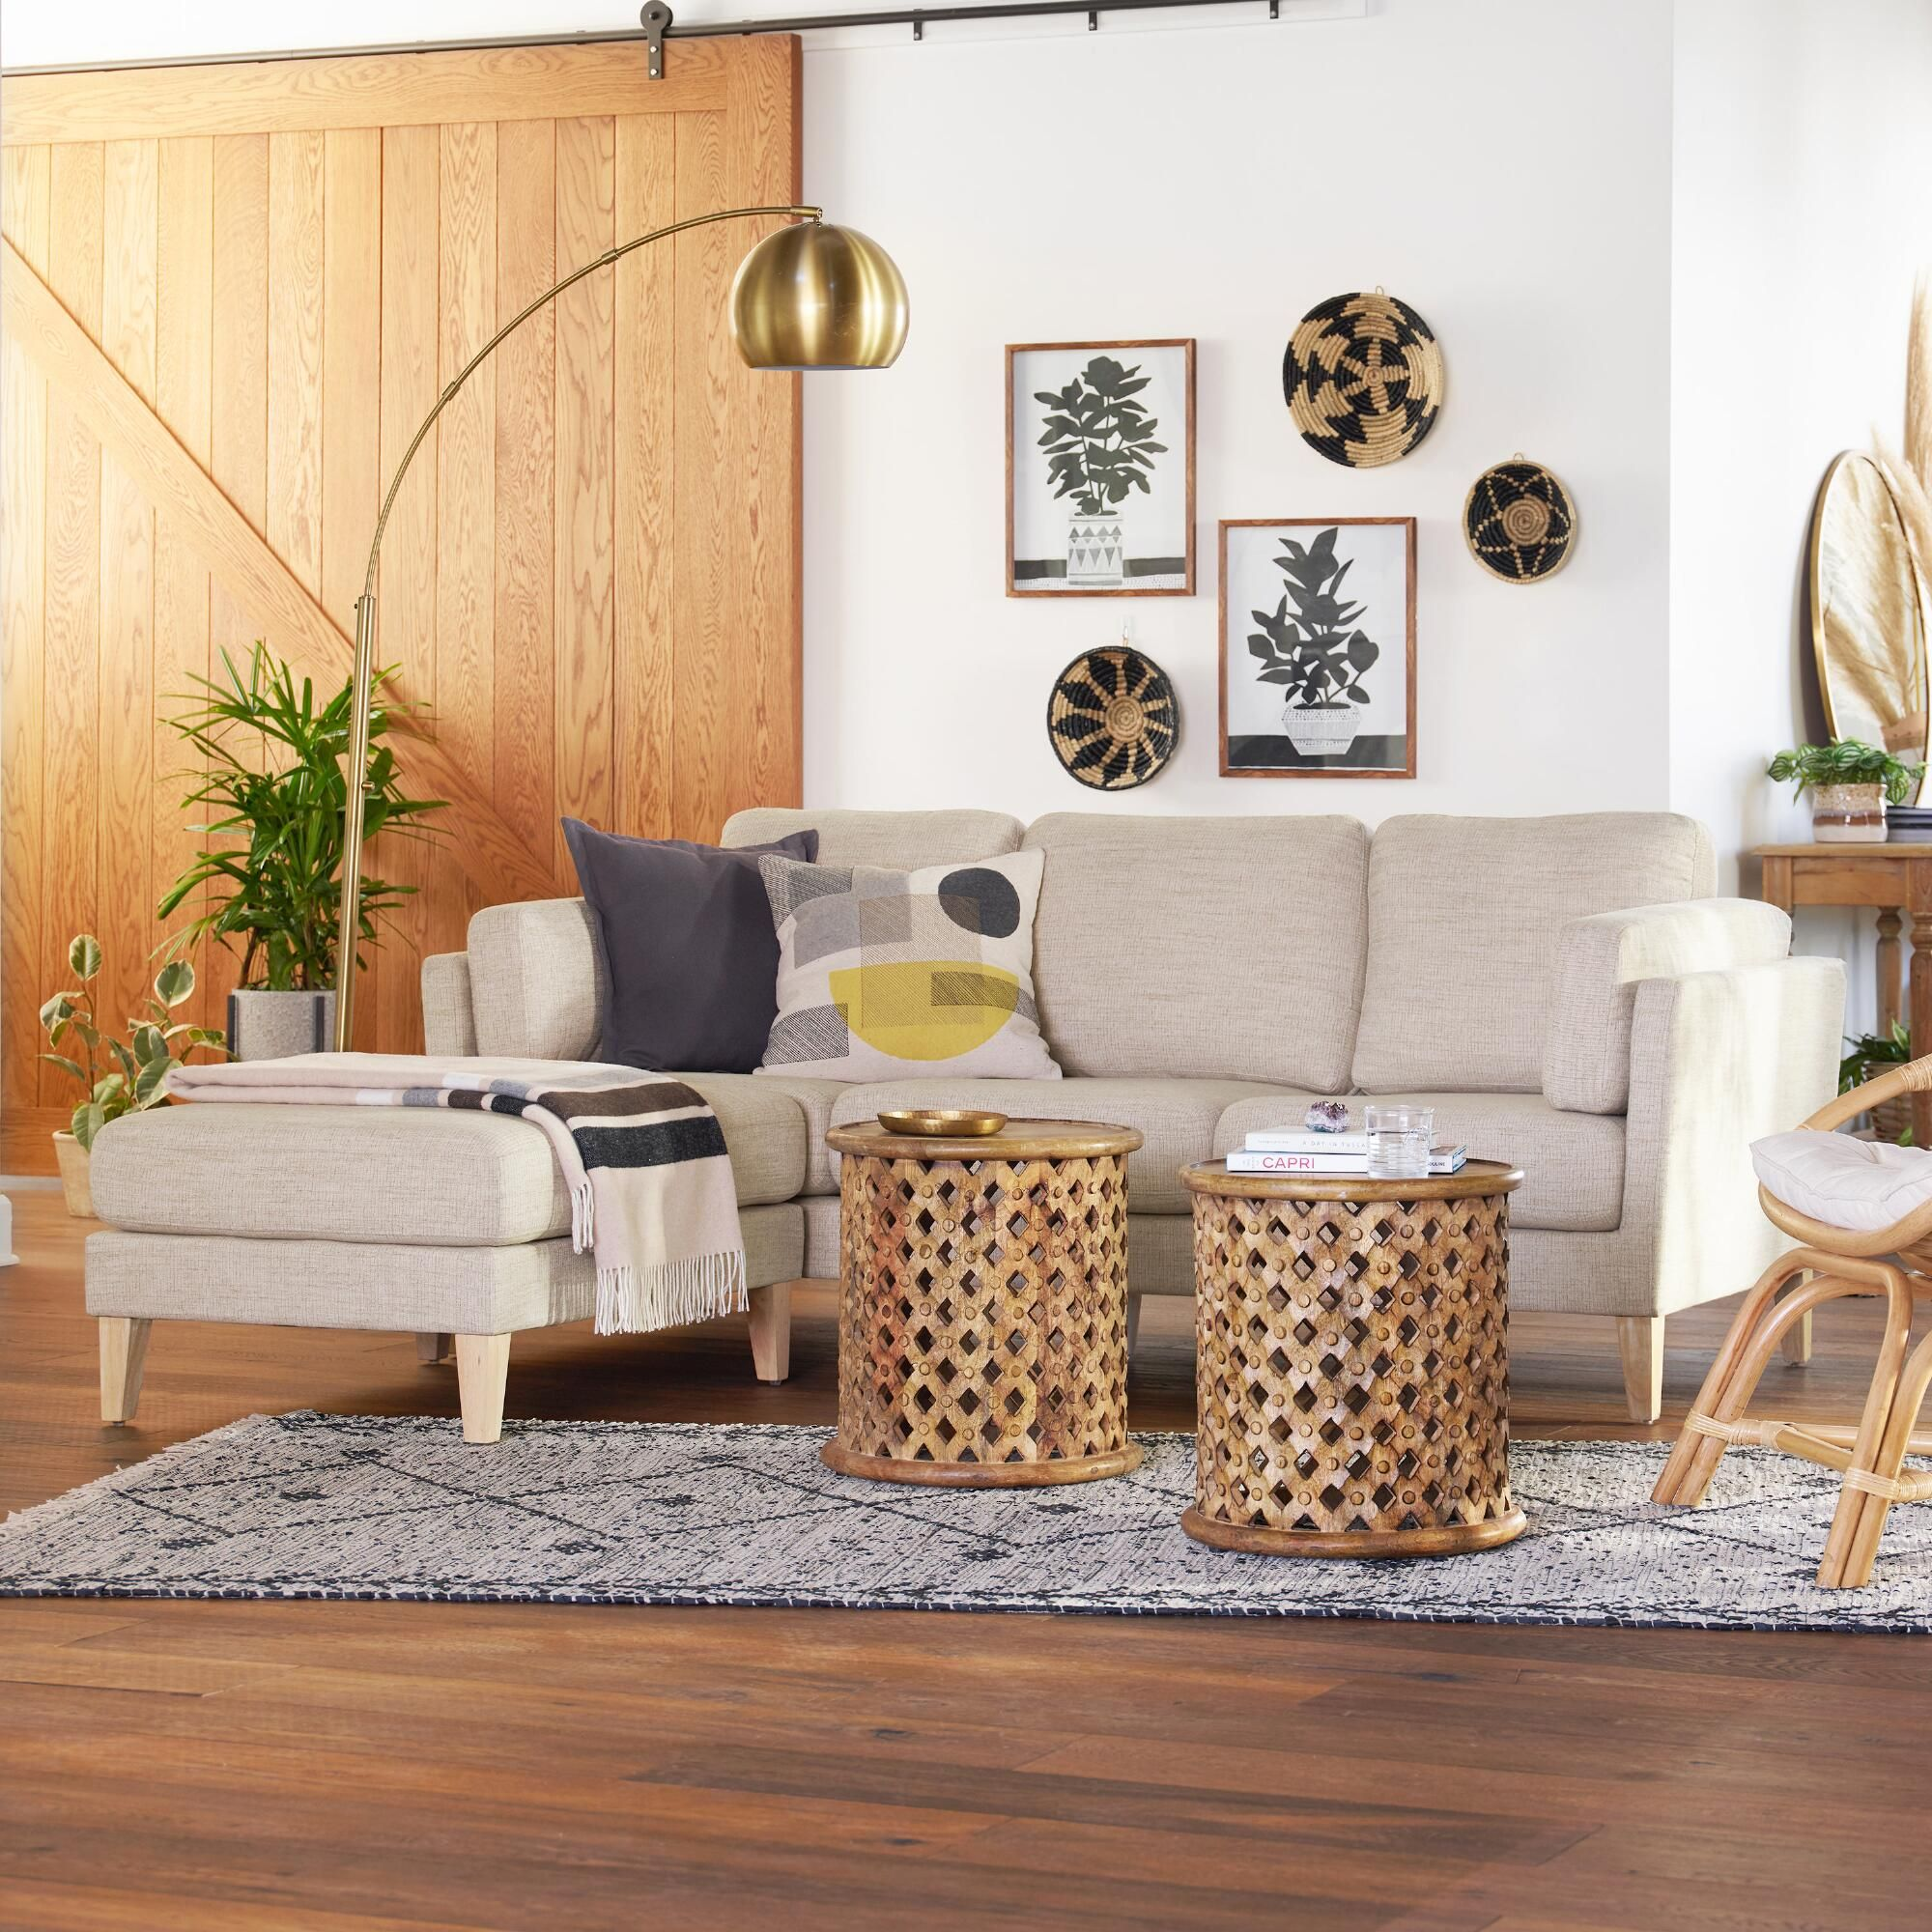 Oatmeal Woven Noelle Sofa And Ottoman World Market In 2020 Living Room Decor Room Decor Affordable Home Decor #oatmeal #sofa #living #room #ideas